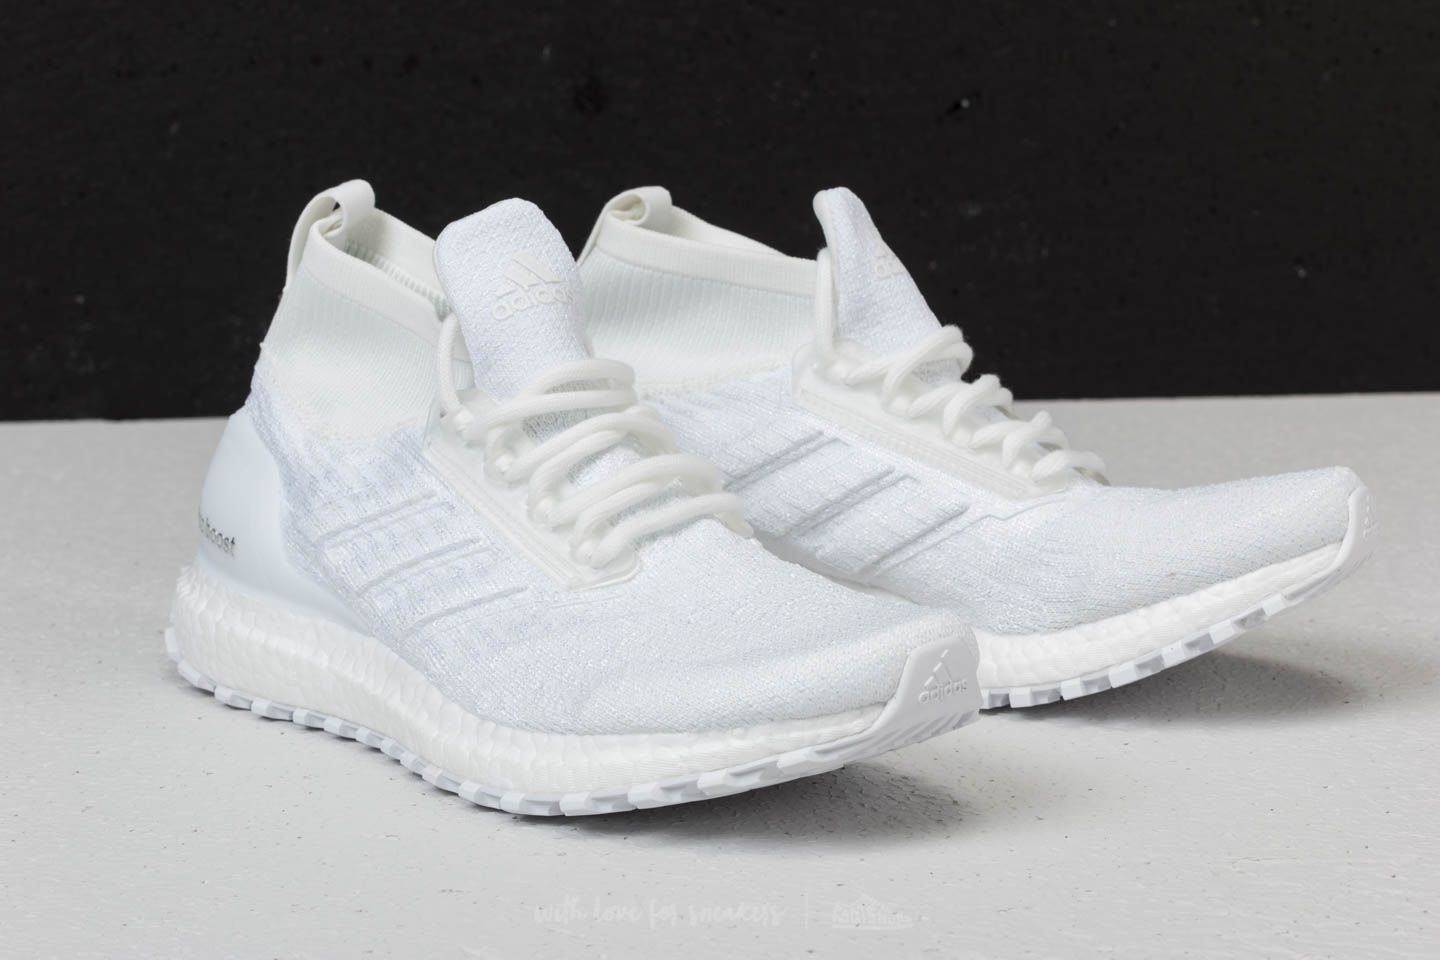 new product da4d1 6038c adidas Ultraboost All Terrain Non Dyed/ Non Dyed/ Non Dyed ...